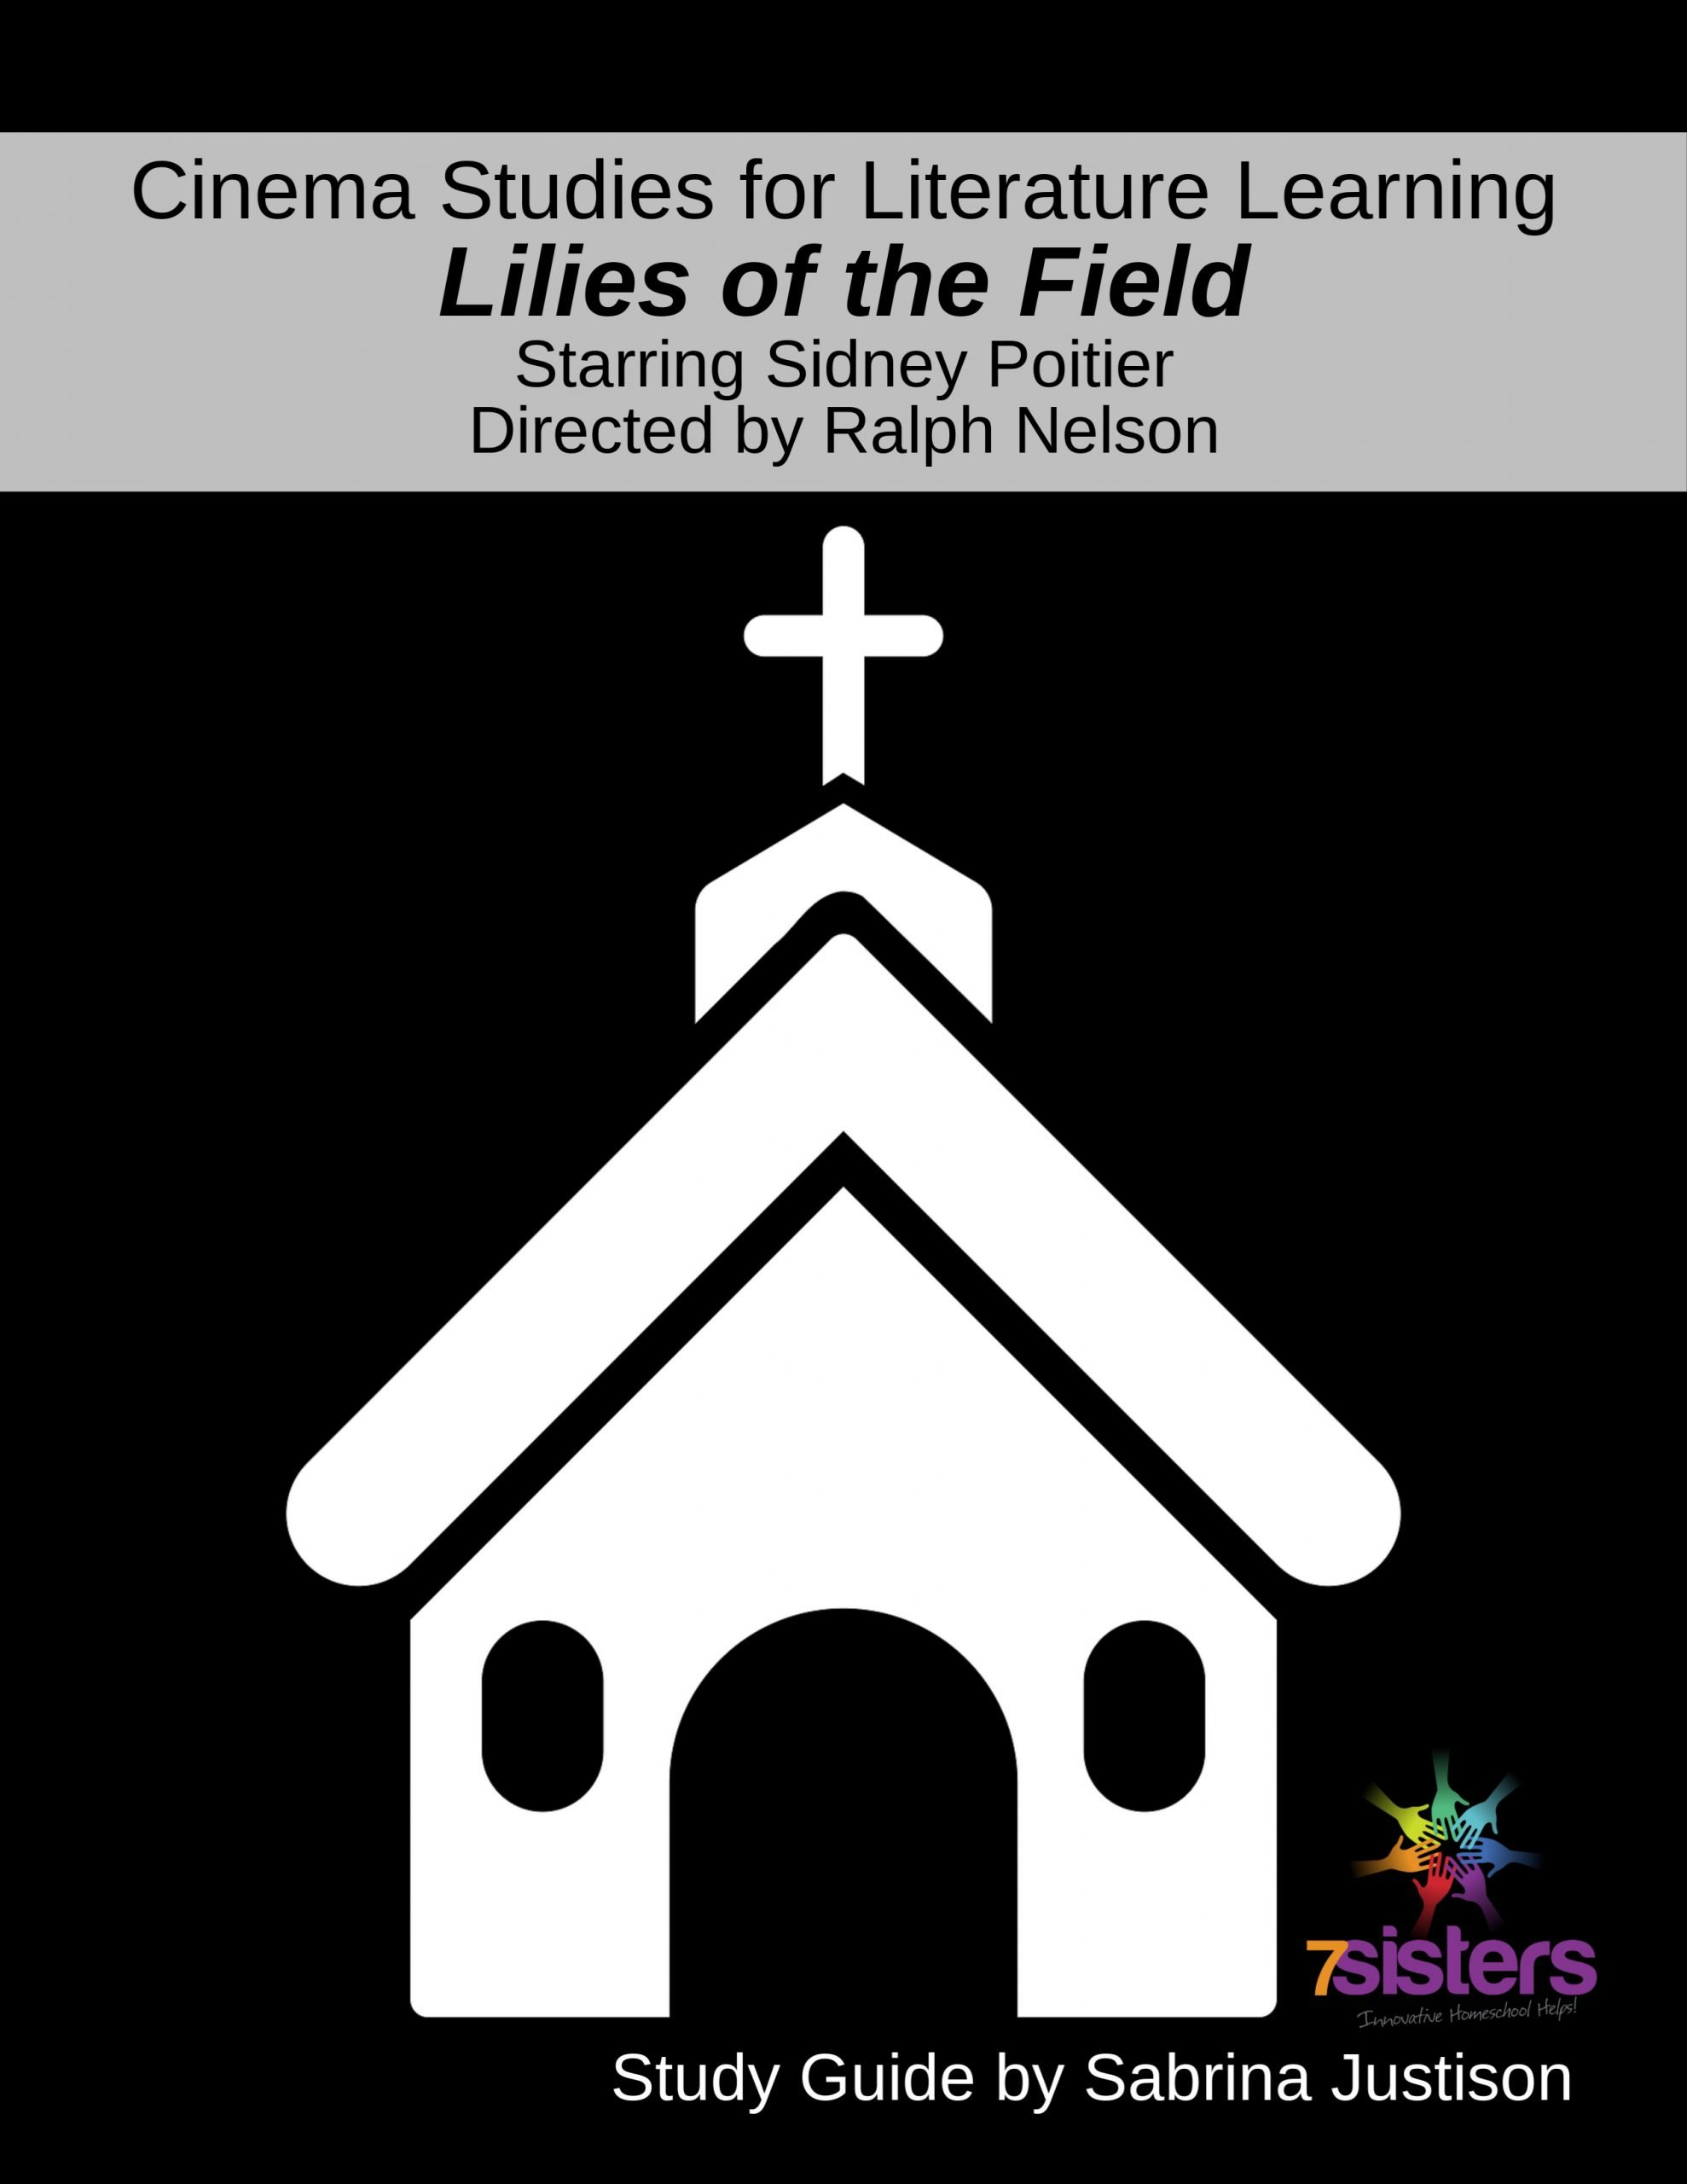 Cinema Study Guide Lilies of the Field